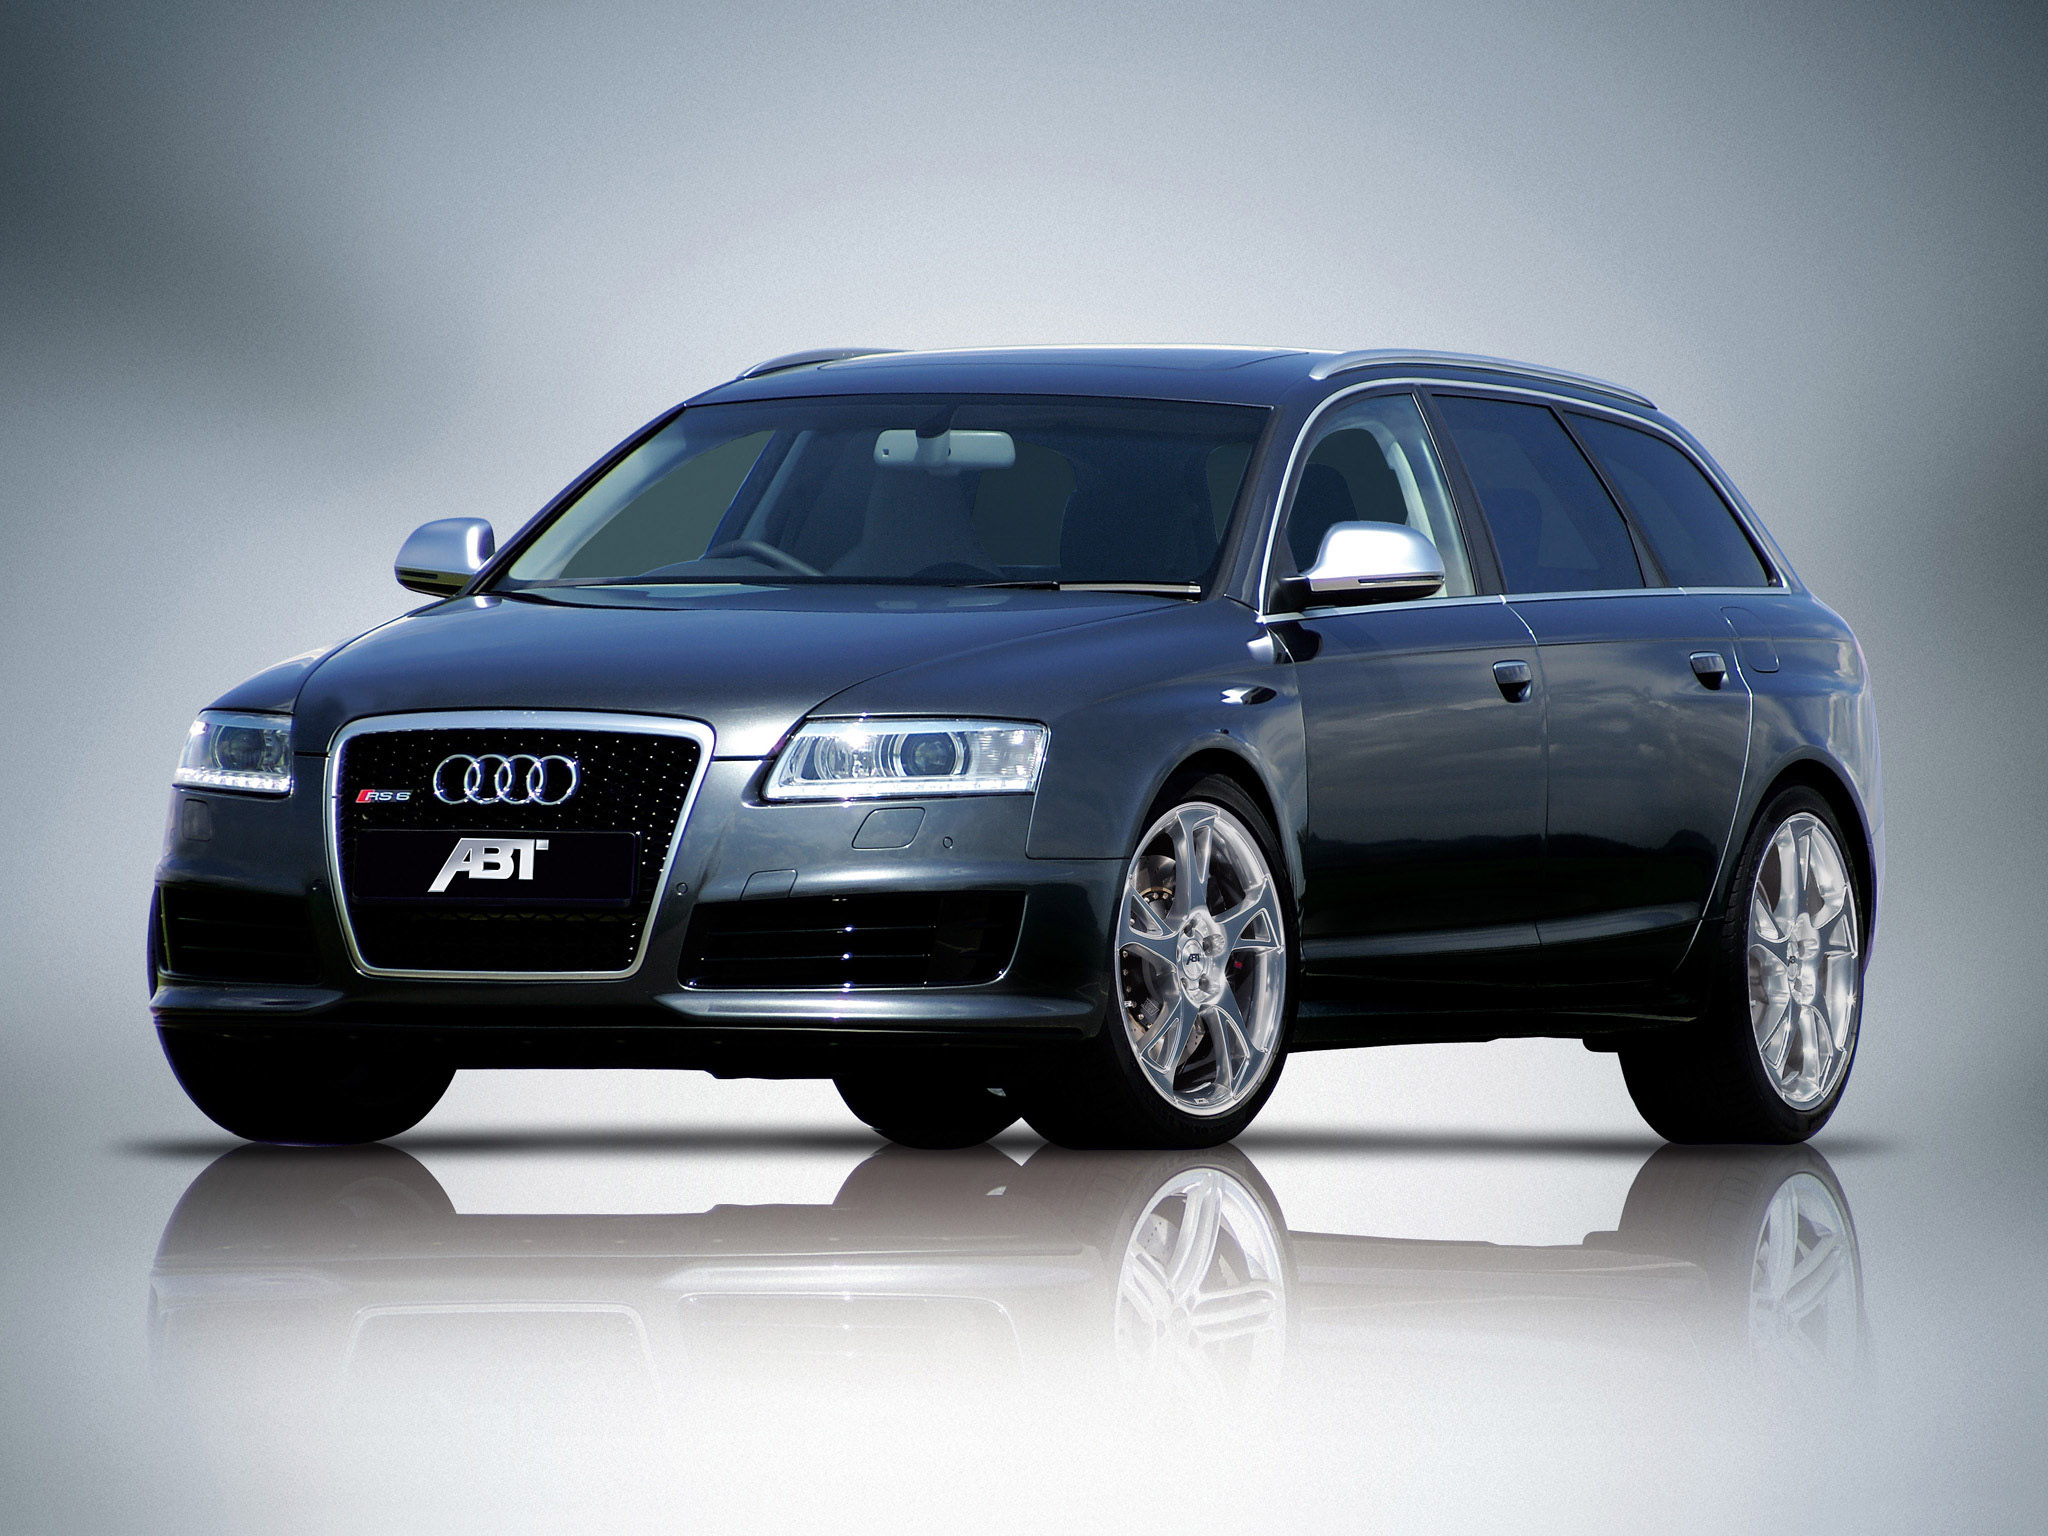 2008 audi rs6 c6 pictures information and specs auto. Black Bedroom Furniture Sets. Home Design Ideas